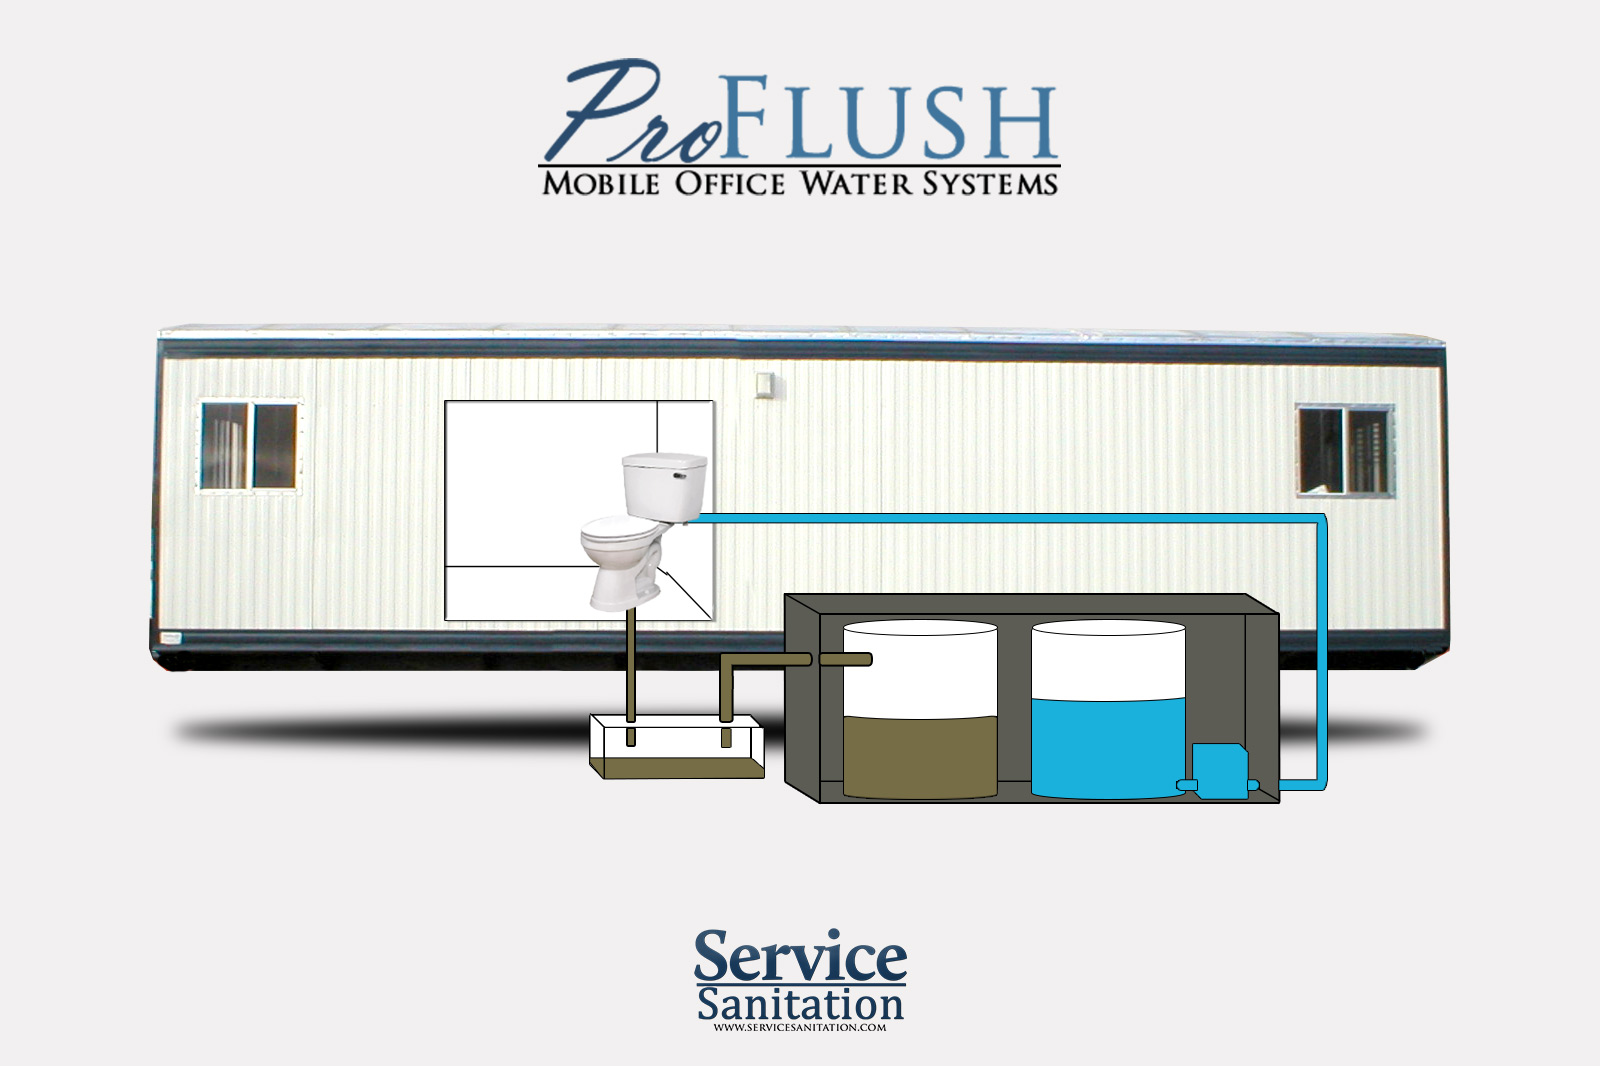 Pro Flush Portable Water Systems For Mobile Office Trailers